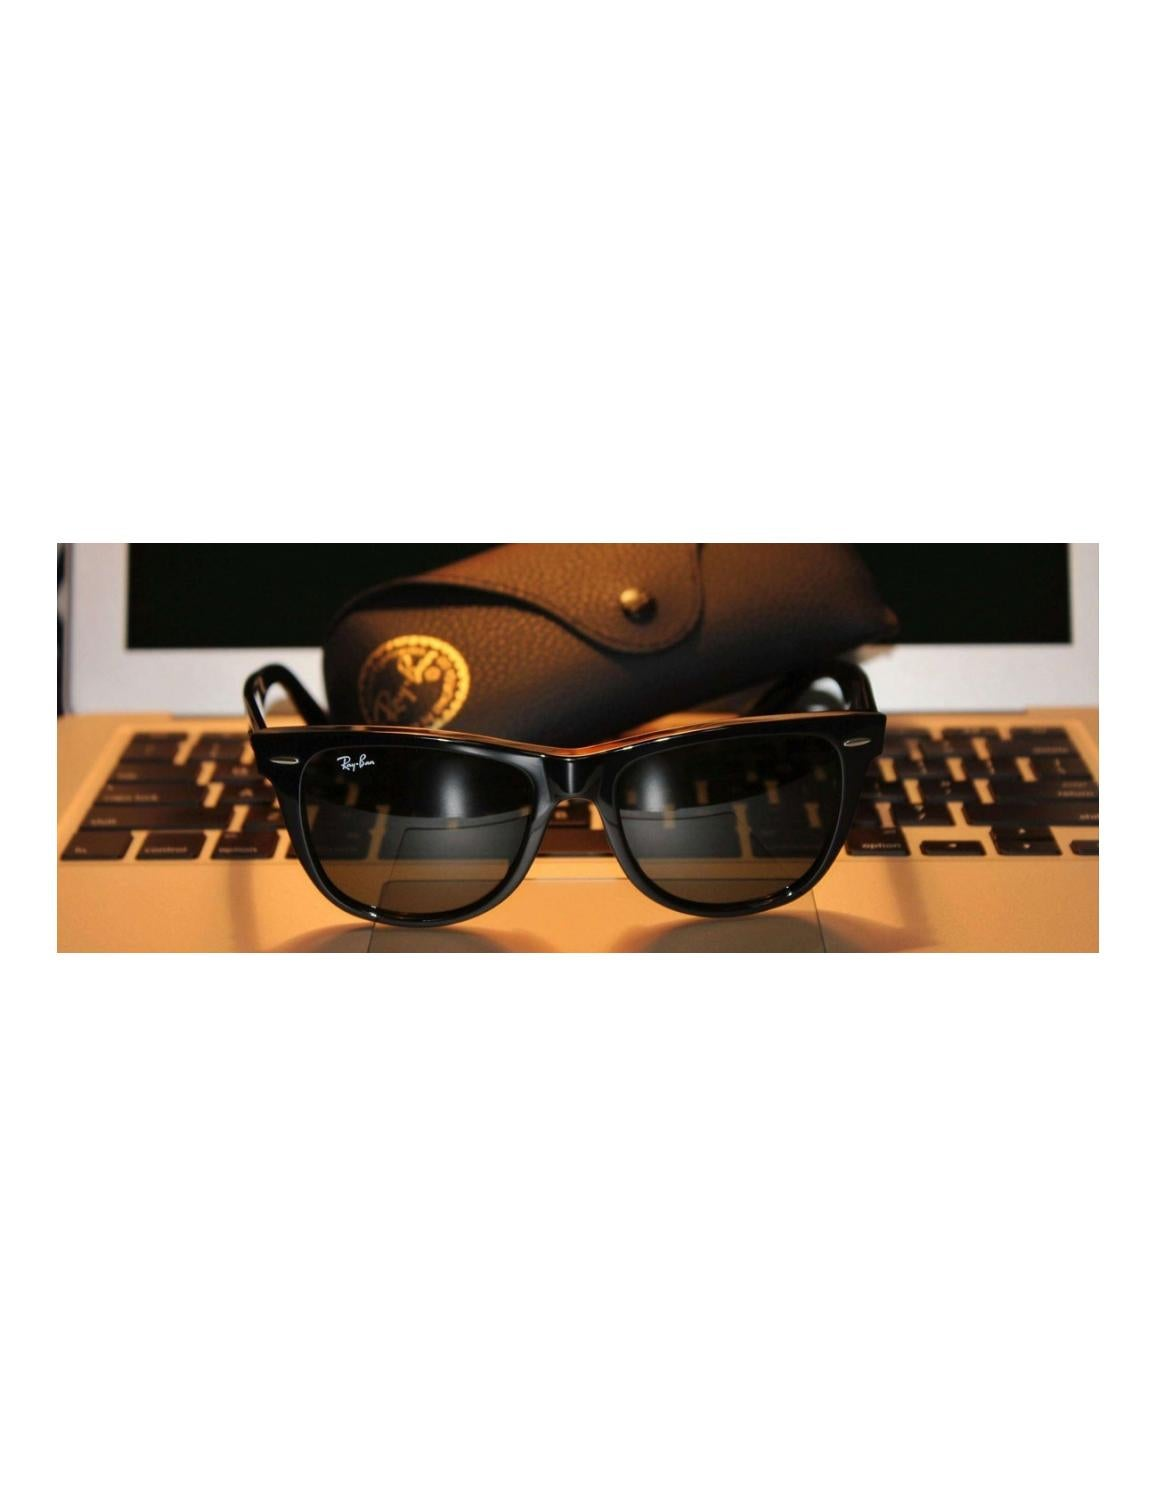 14bfb6cd76 Cheap ray ban sunglasses nz outlet